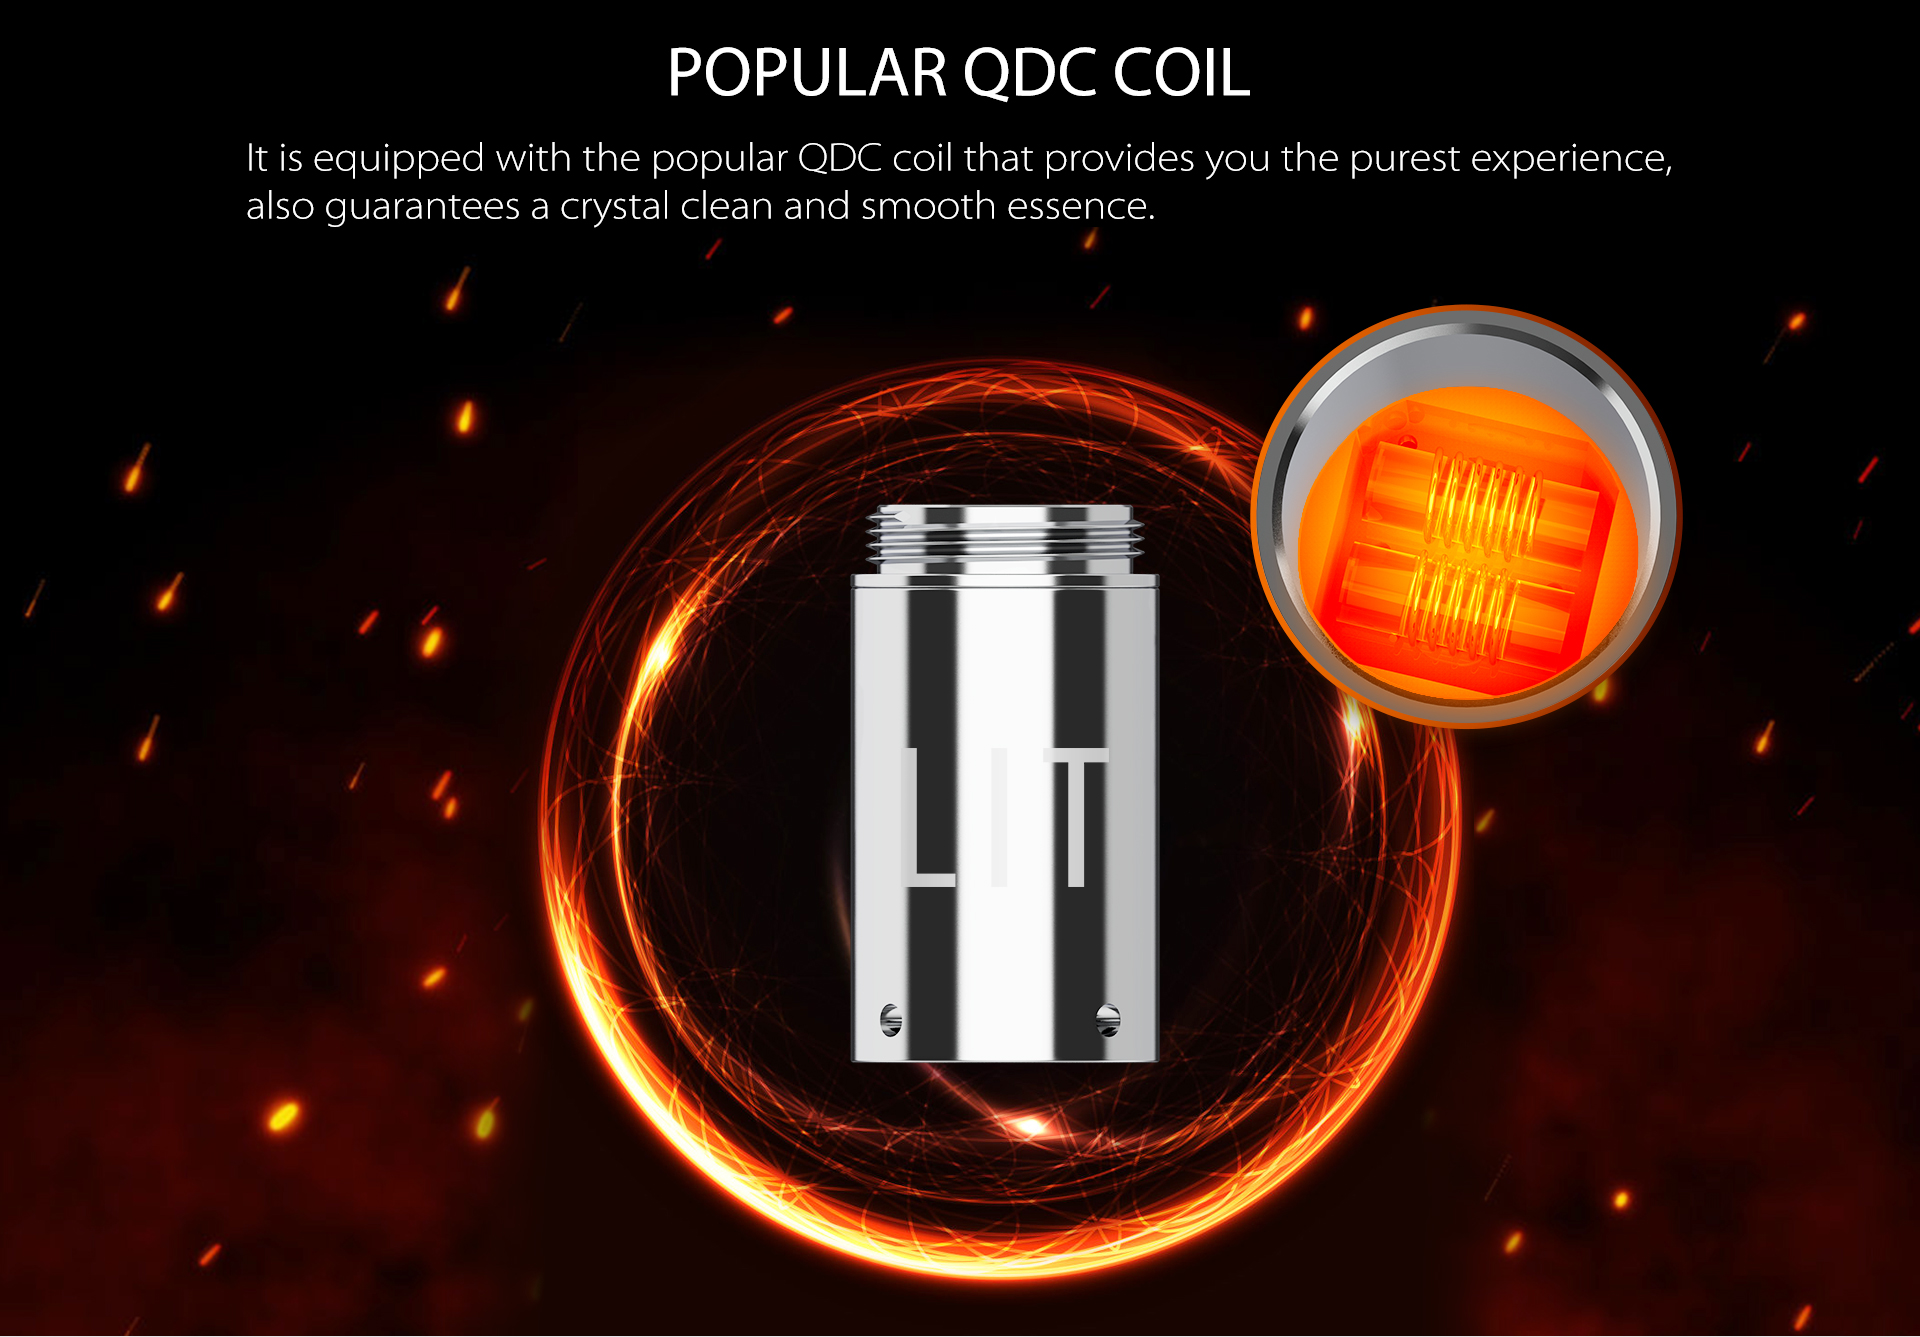 Yocan Lit Twist Concentrate Vaporizer equipped with QDC coil.